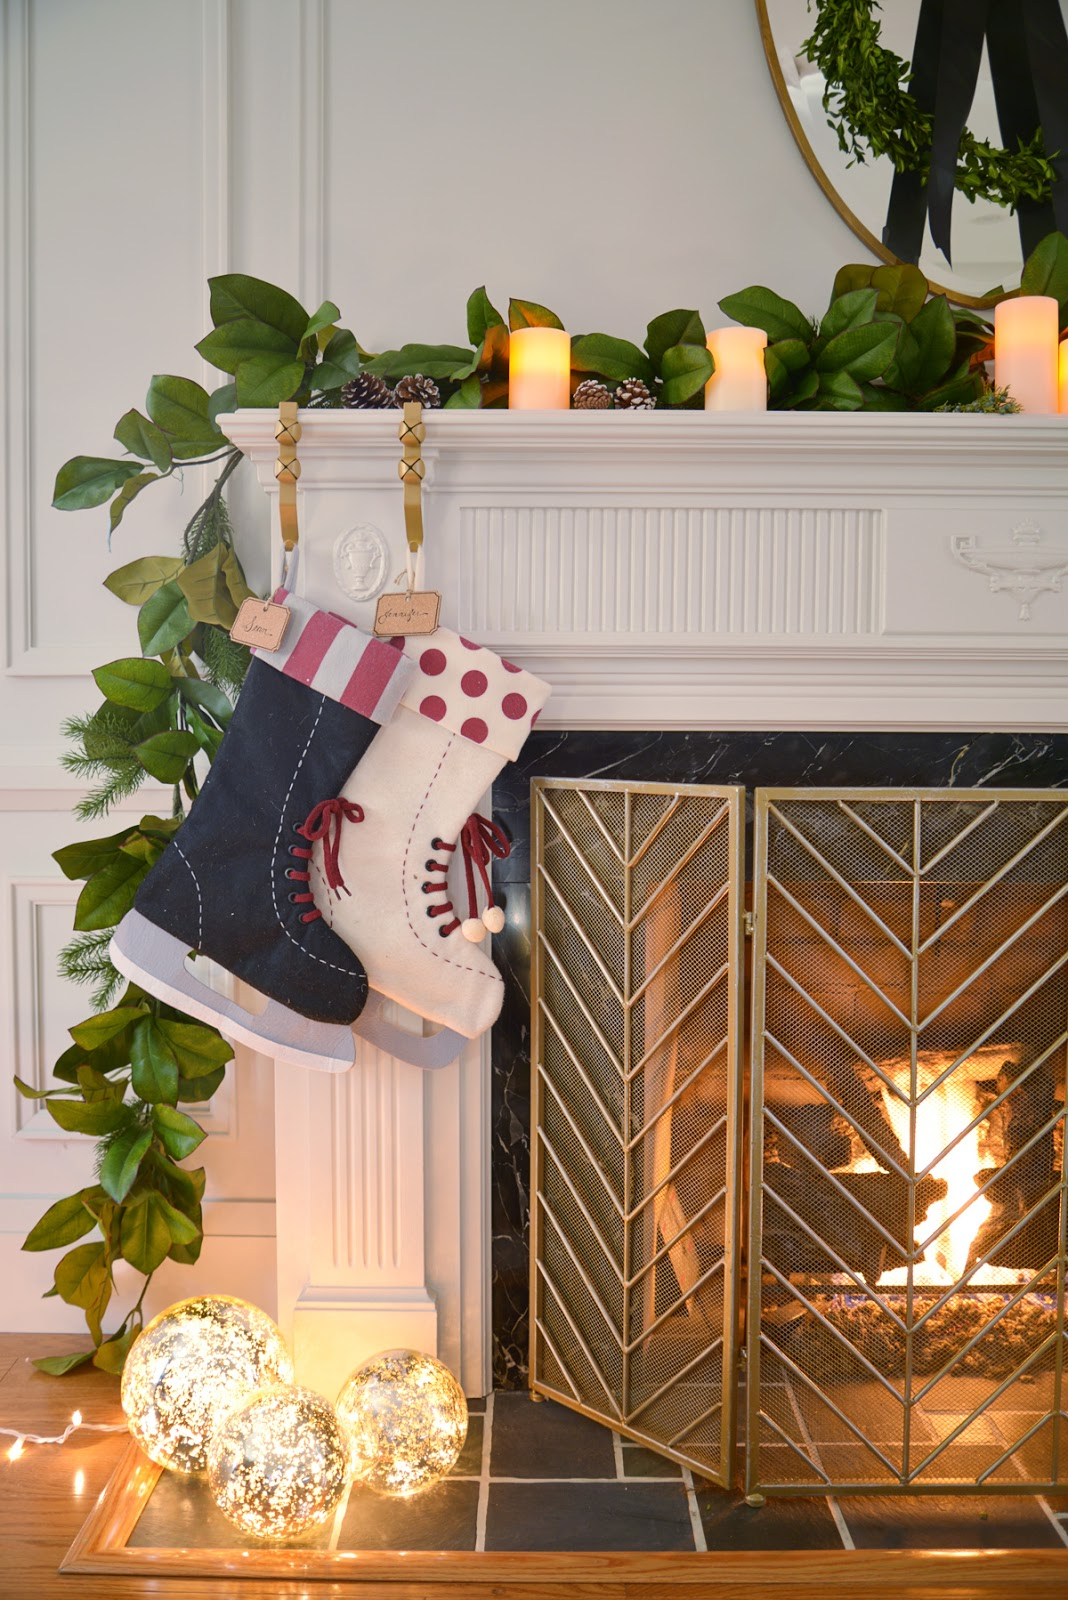 felt stockings on fireplace, magnolia garland